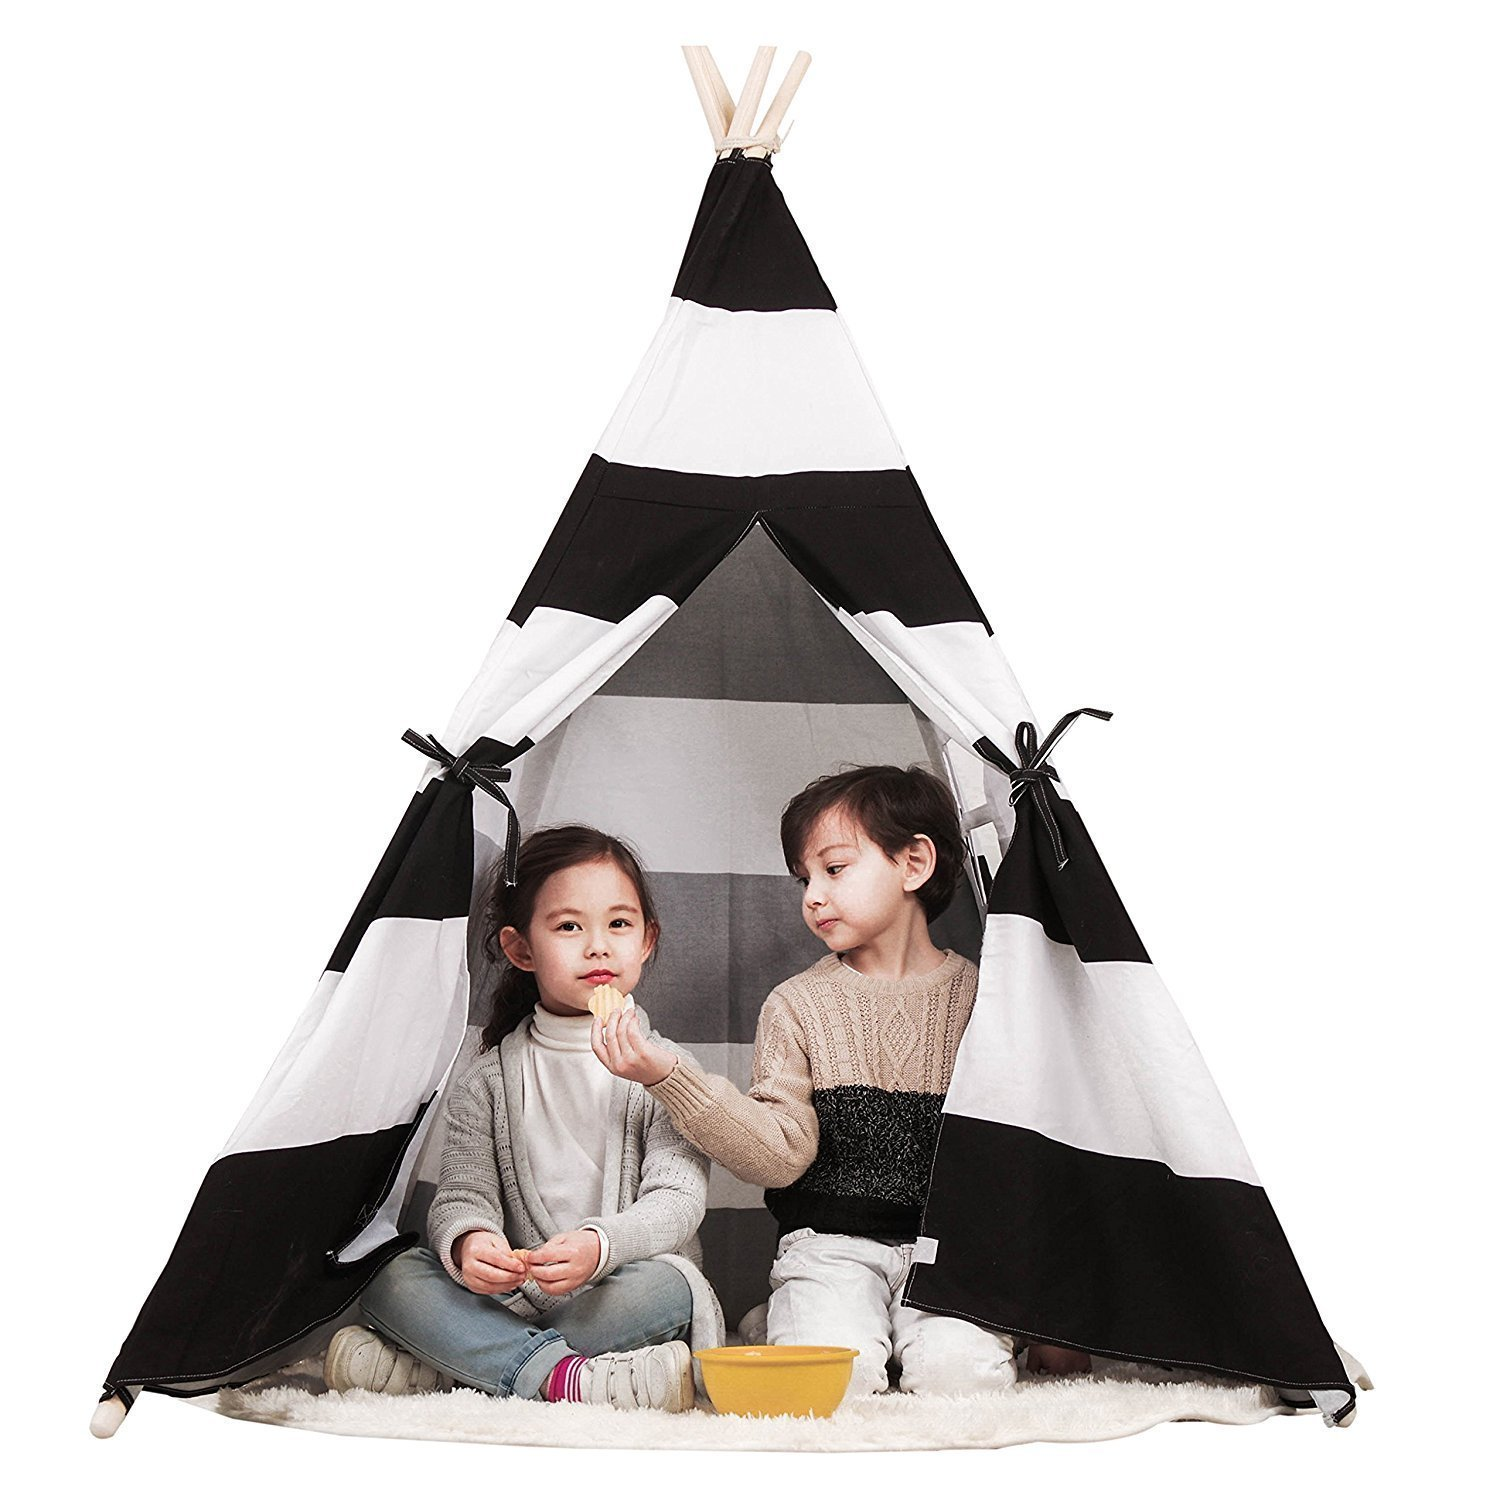 Toysland Indoor Indian Playhouse Teepee Tent for Kids, Toddlers Canvas with Carry Case, Black Stripe BlackThickStripeTeepeeTL